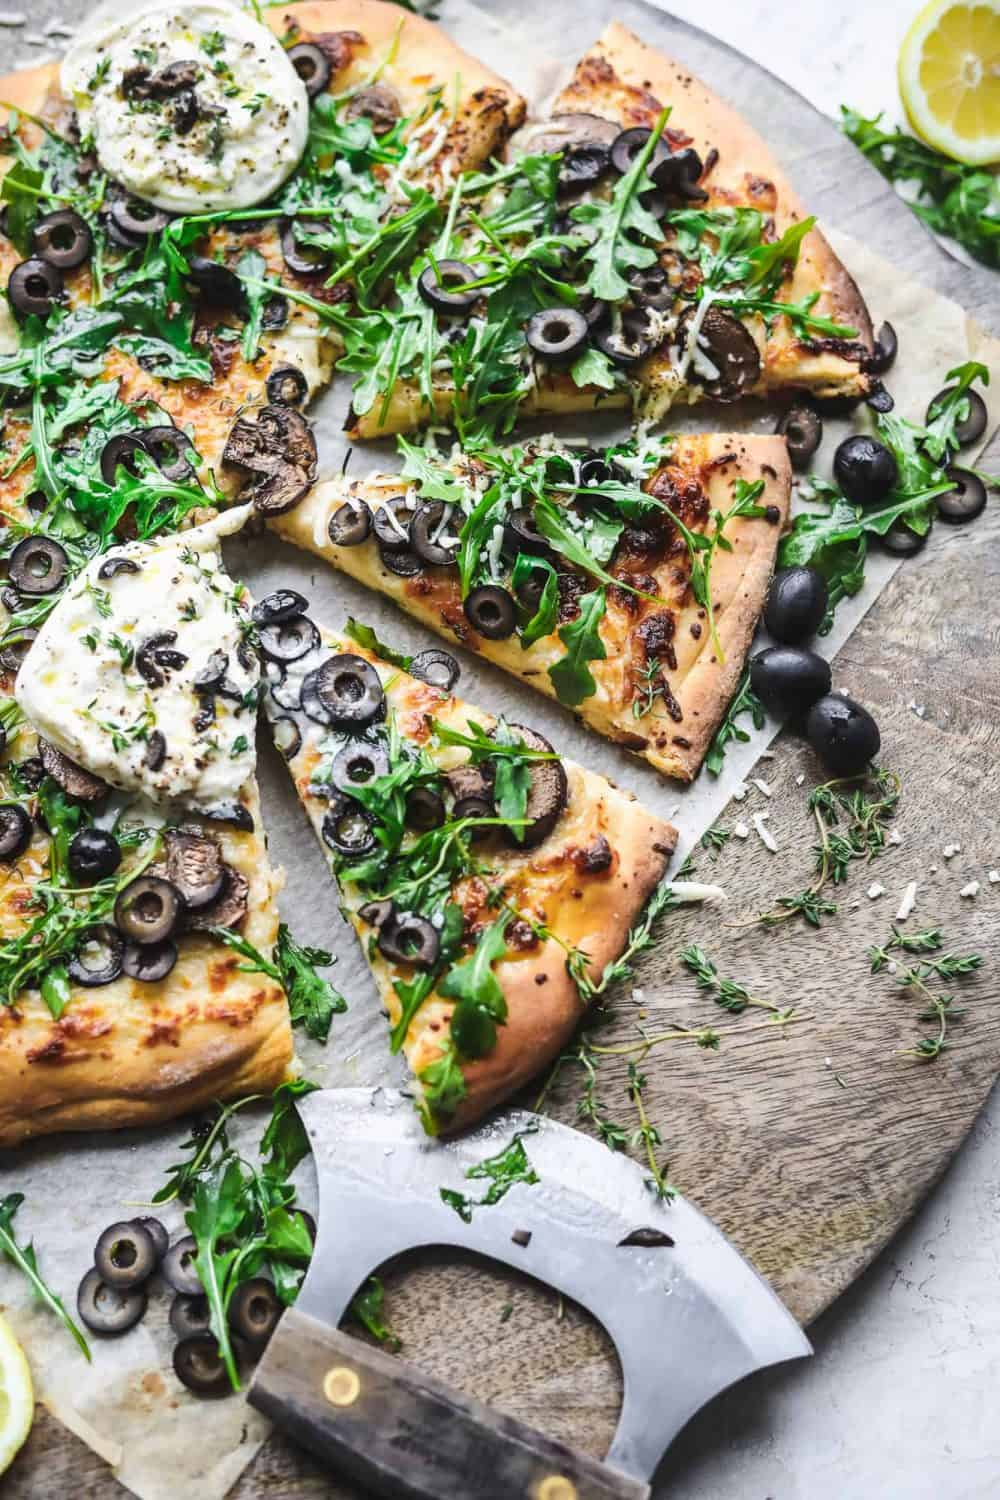 Cheesy Olive Pizza with Mushrooms from Britney Breaks Bread